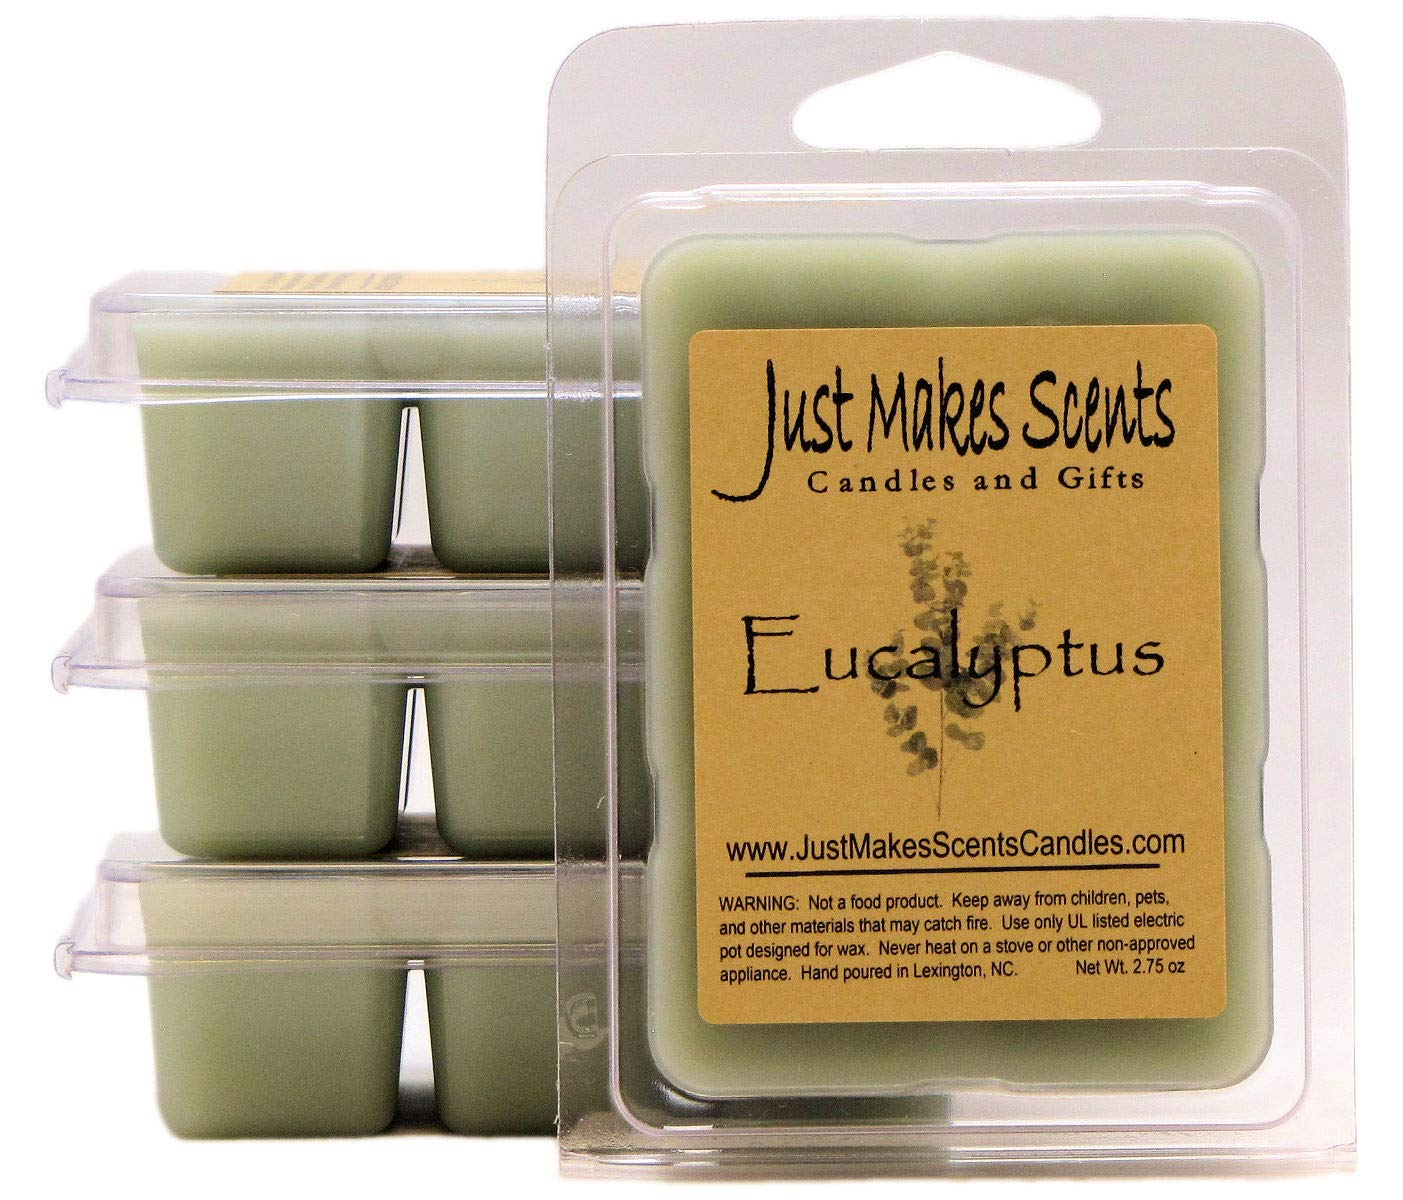 Just Makes Scents 4 Pack - Eucalyptus Scented Wax Melts